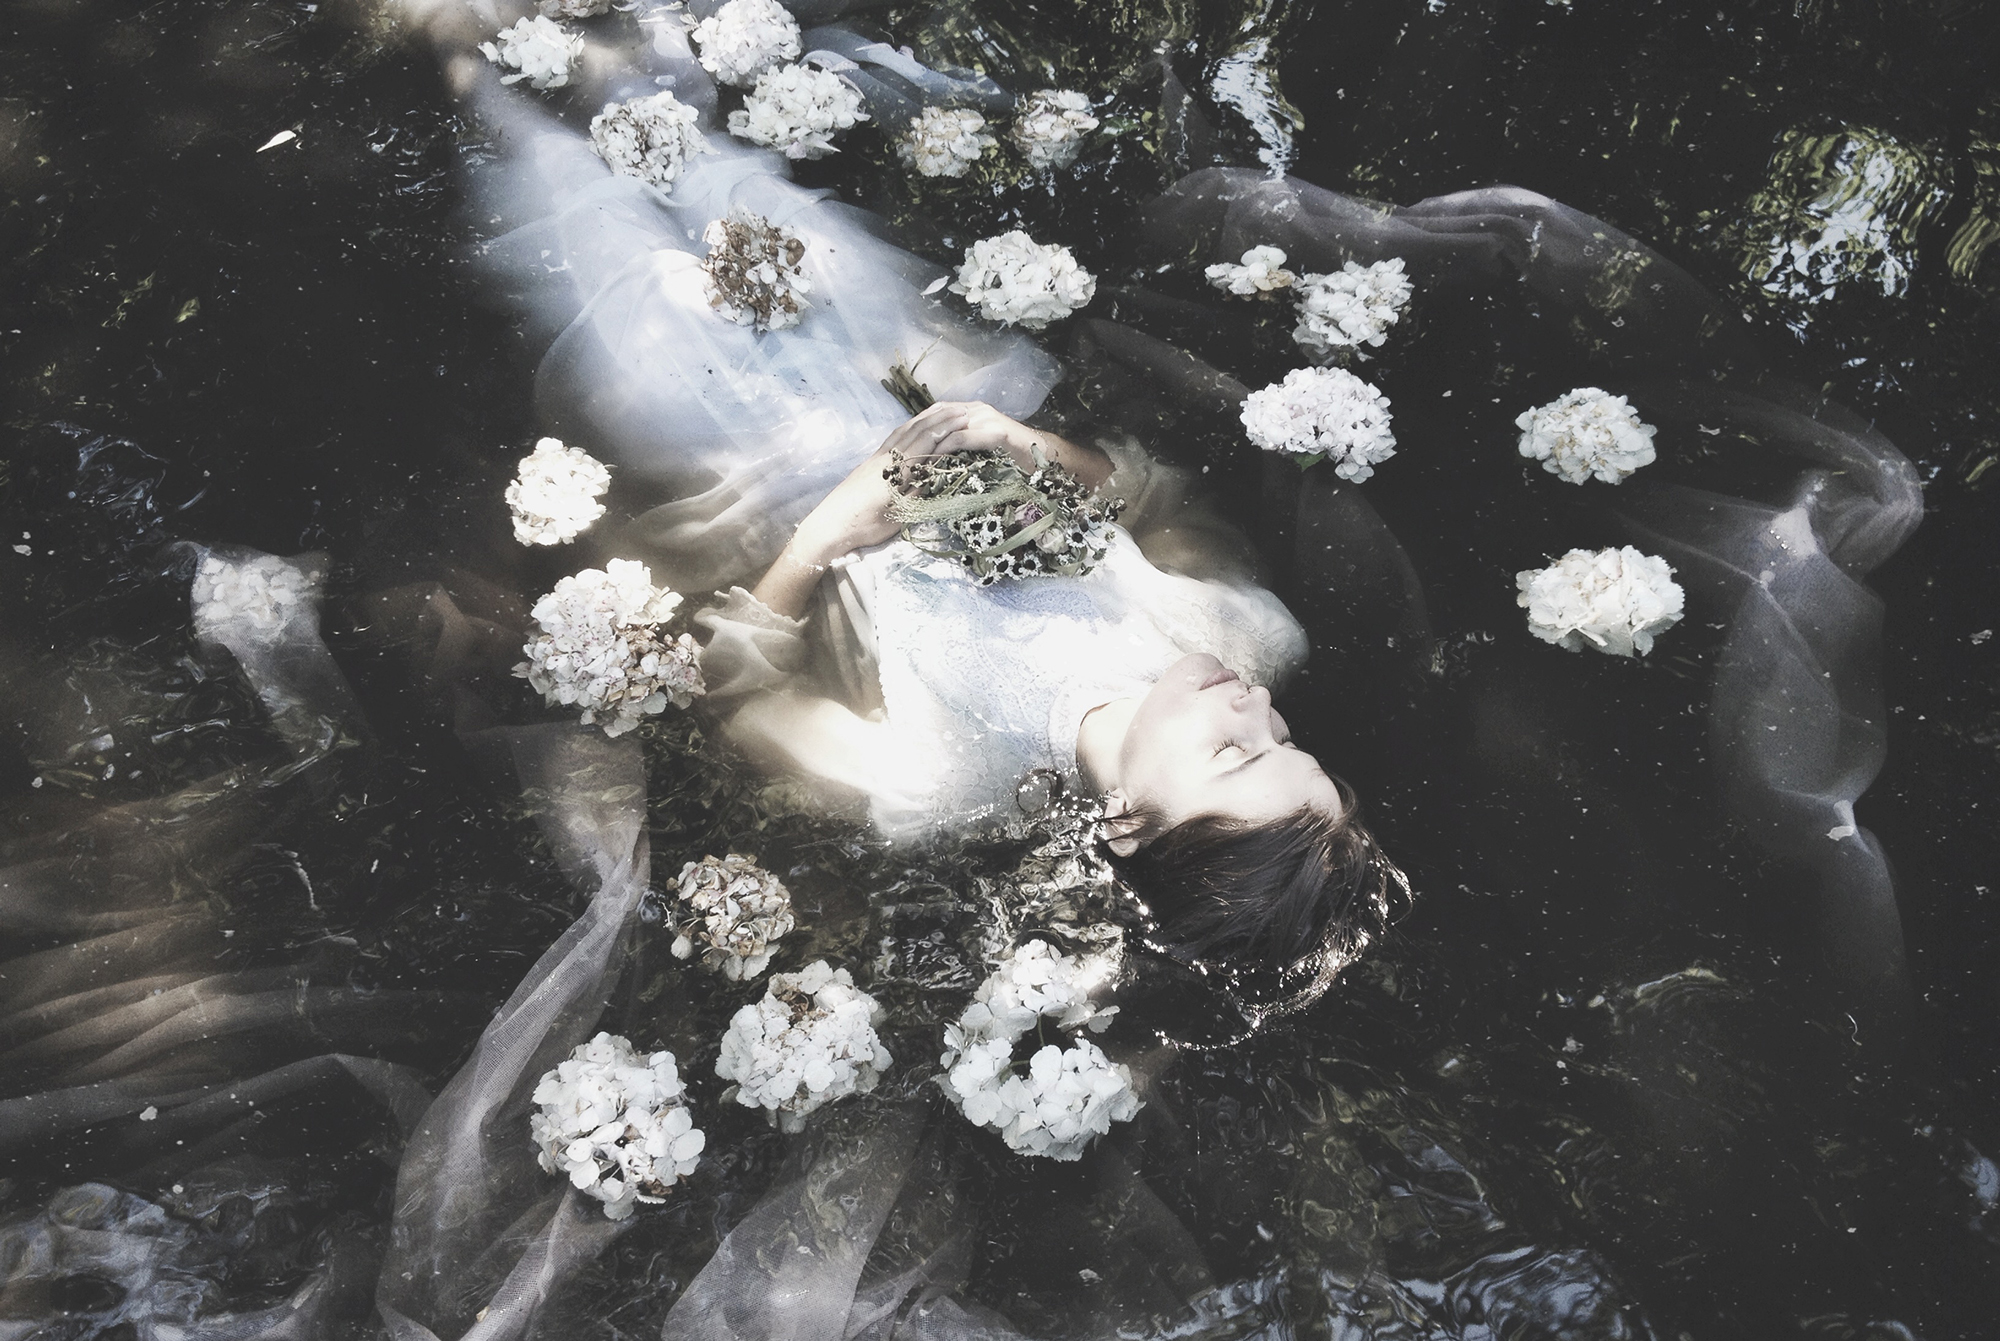 nona_limmen_acourseindying_3